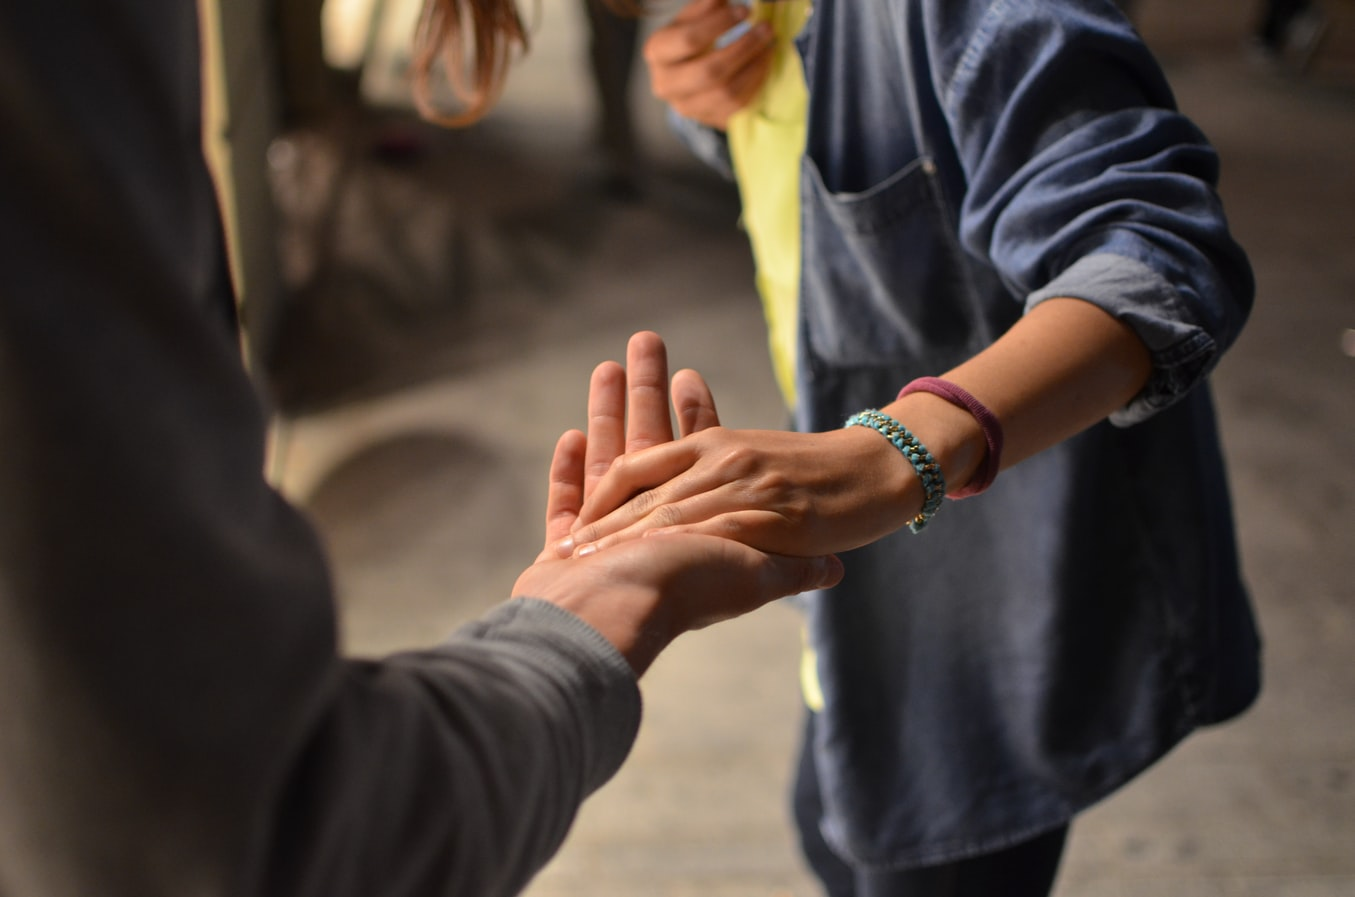 Two people extending thier hands